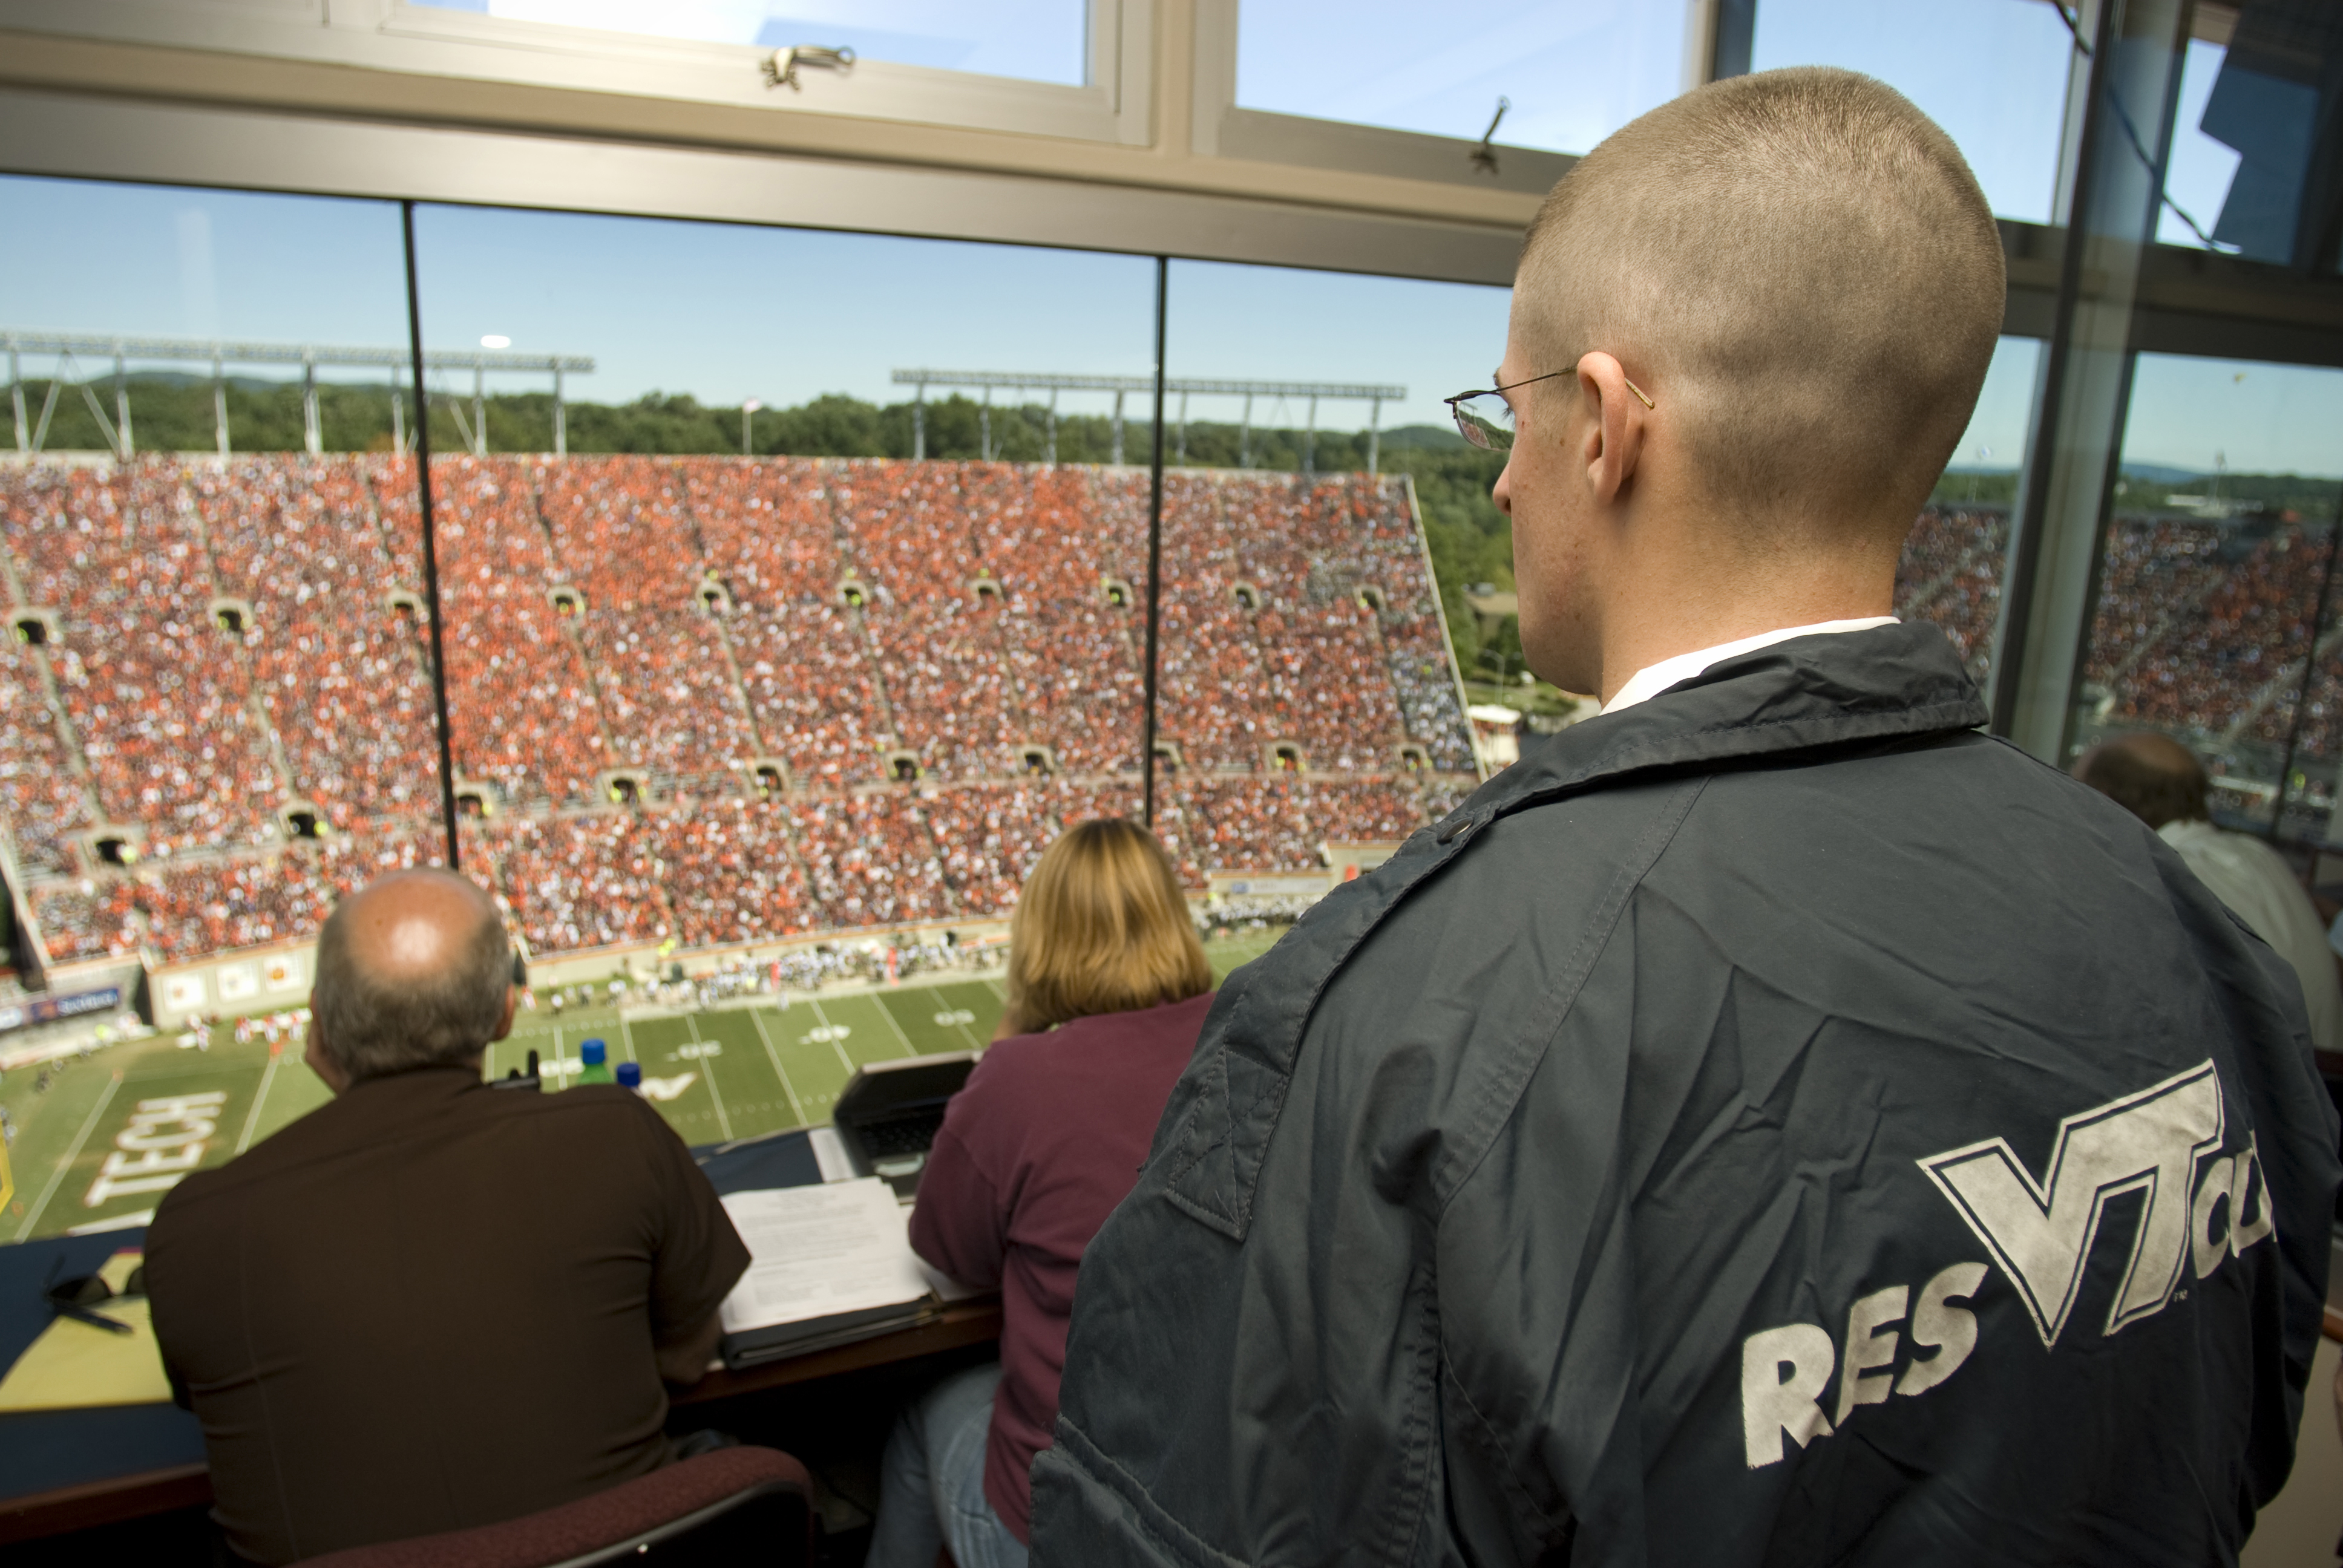 VT rescue squad personnel overlook the crowd at Lane Stadium during a home football game.